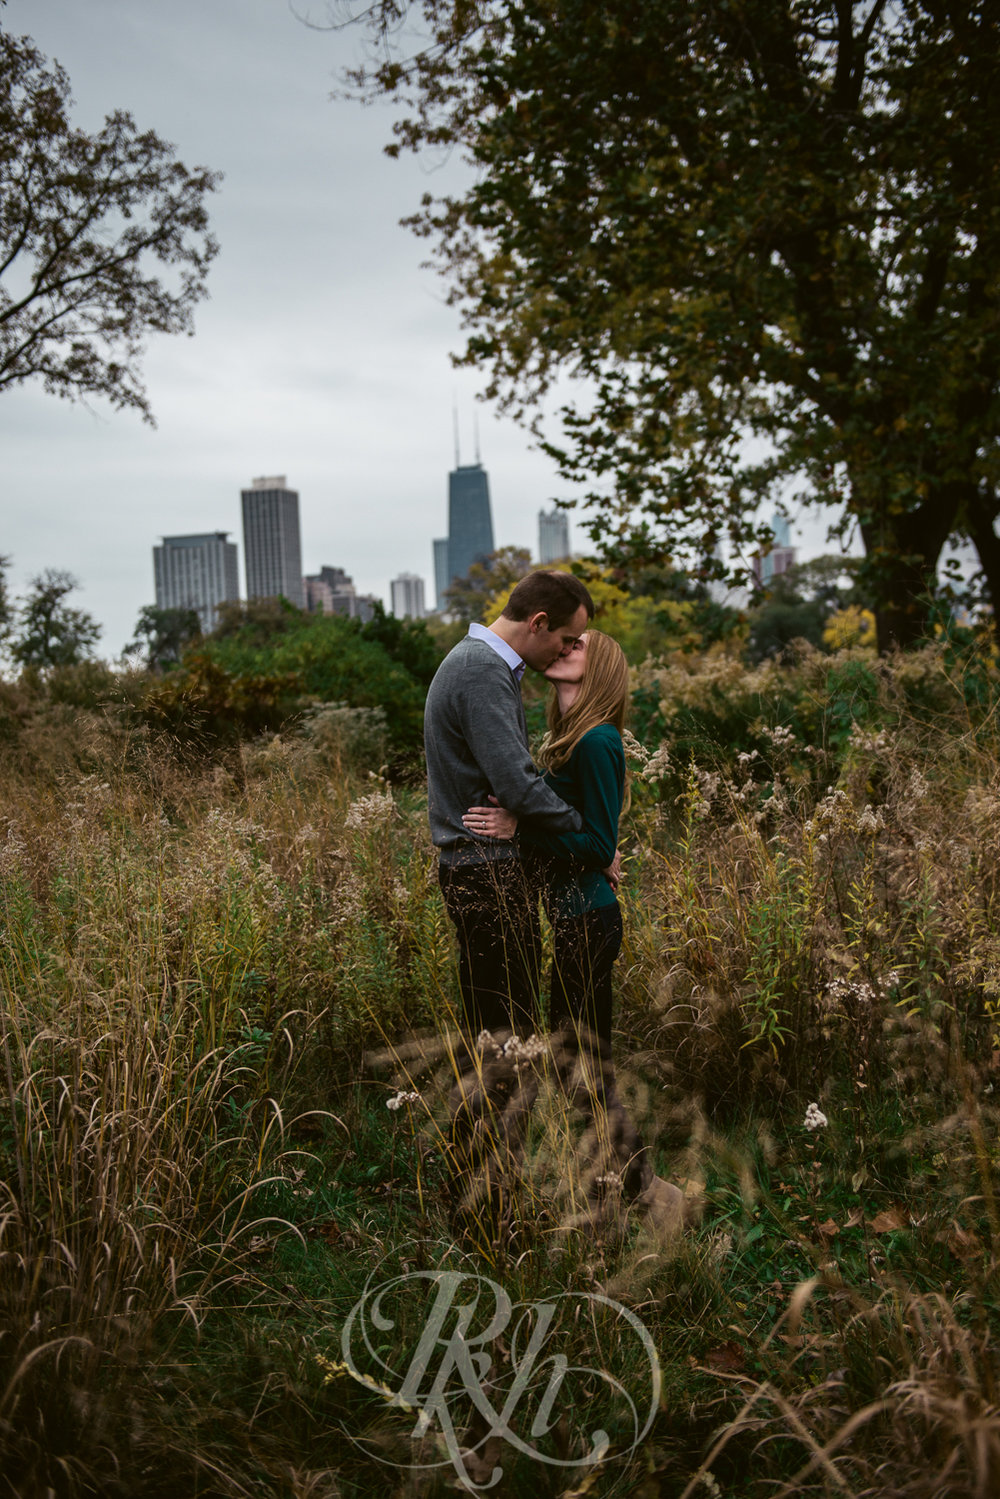 Theresa & Alain - Chicago Engagement Photograhy - RKH Images -2.jpg